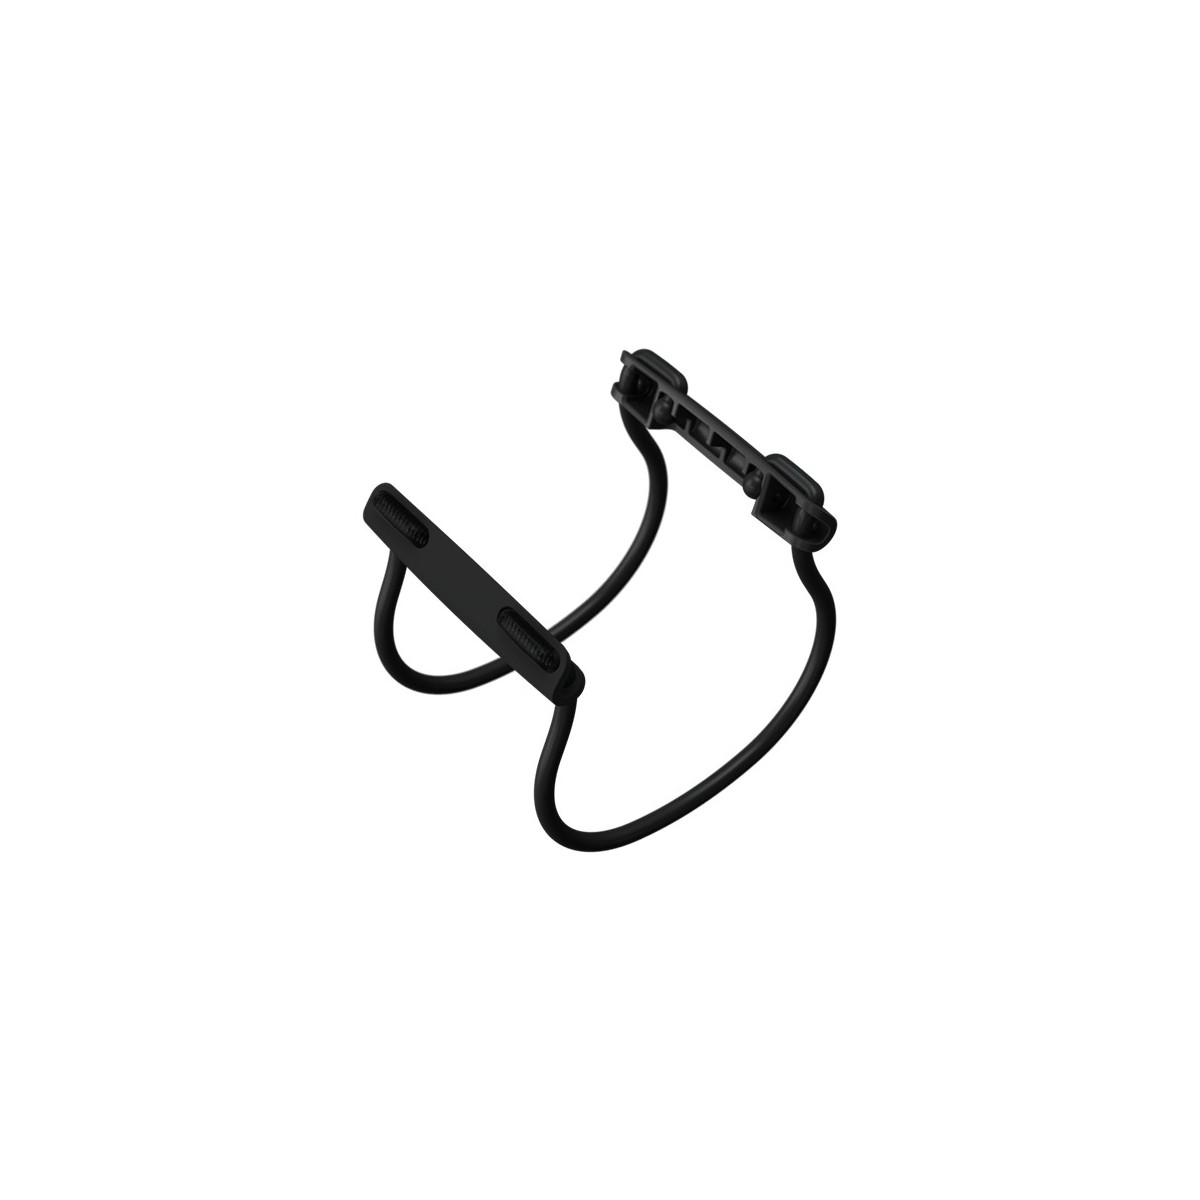 suunto EON Steel Bungee Adapter Kit